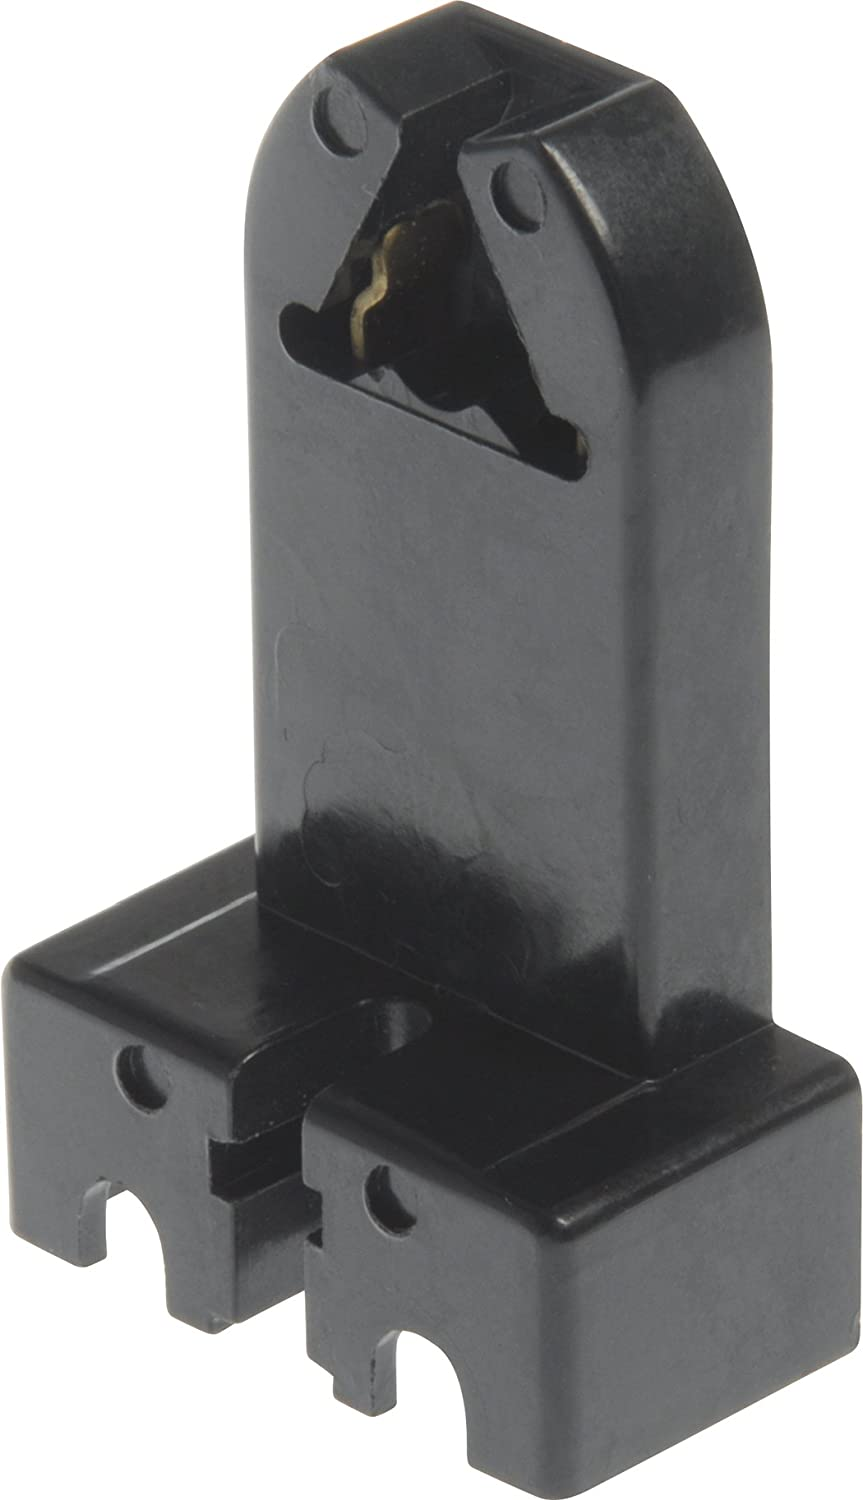 4-Pack The Hillman Group 55038 Lamp Holder End Bi-Pin